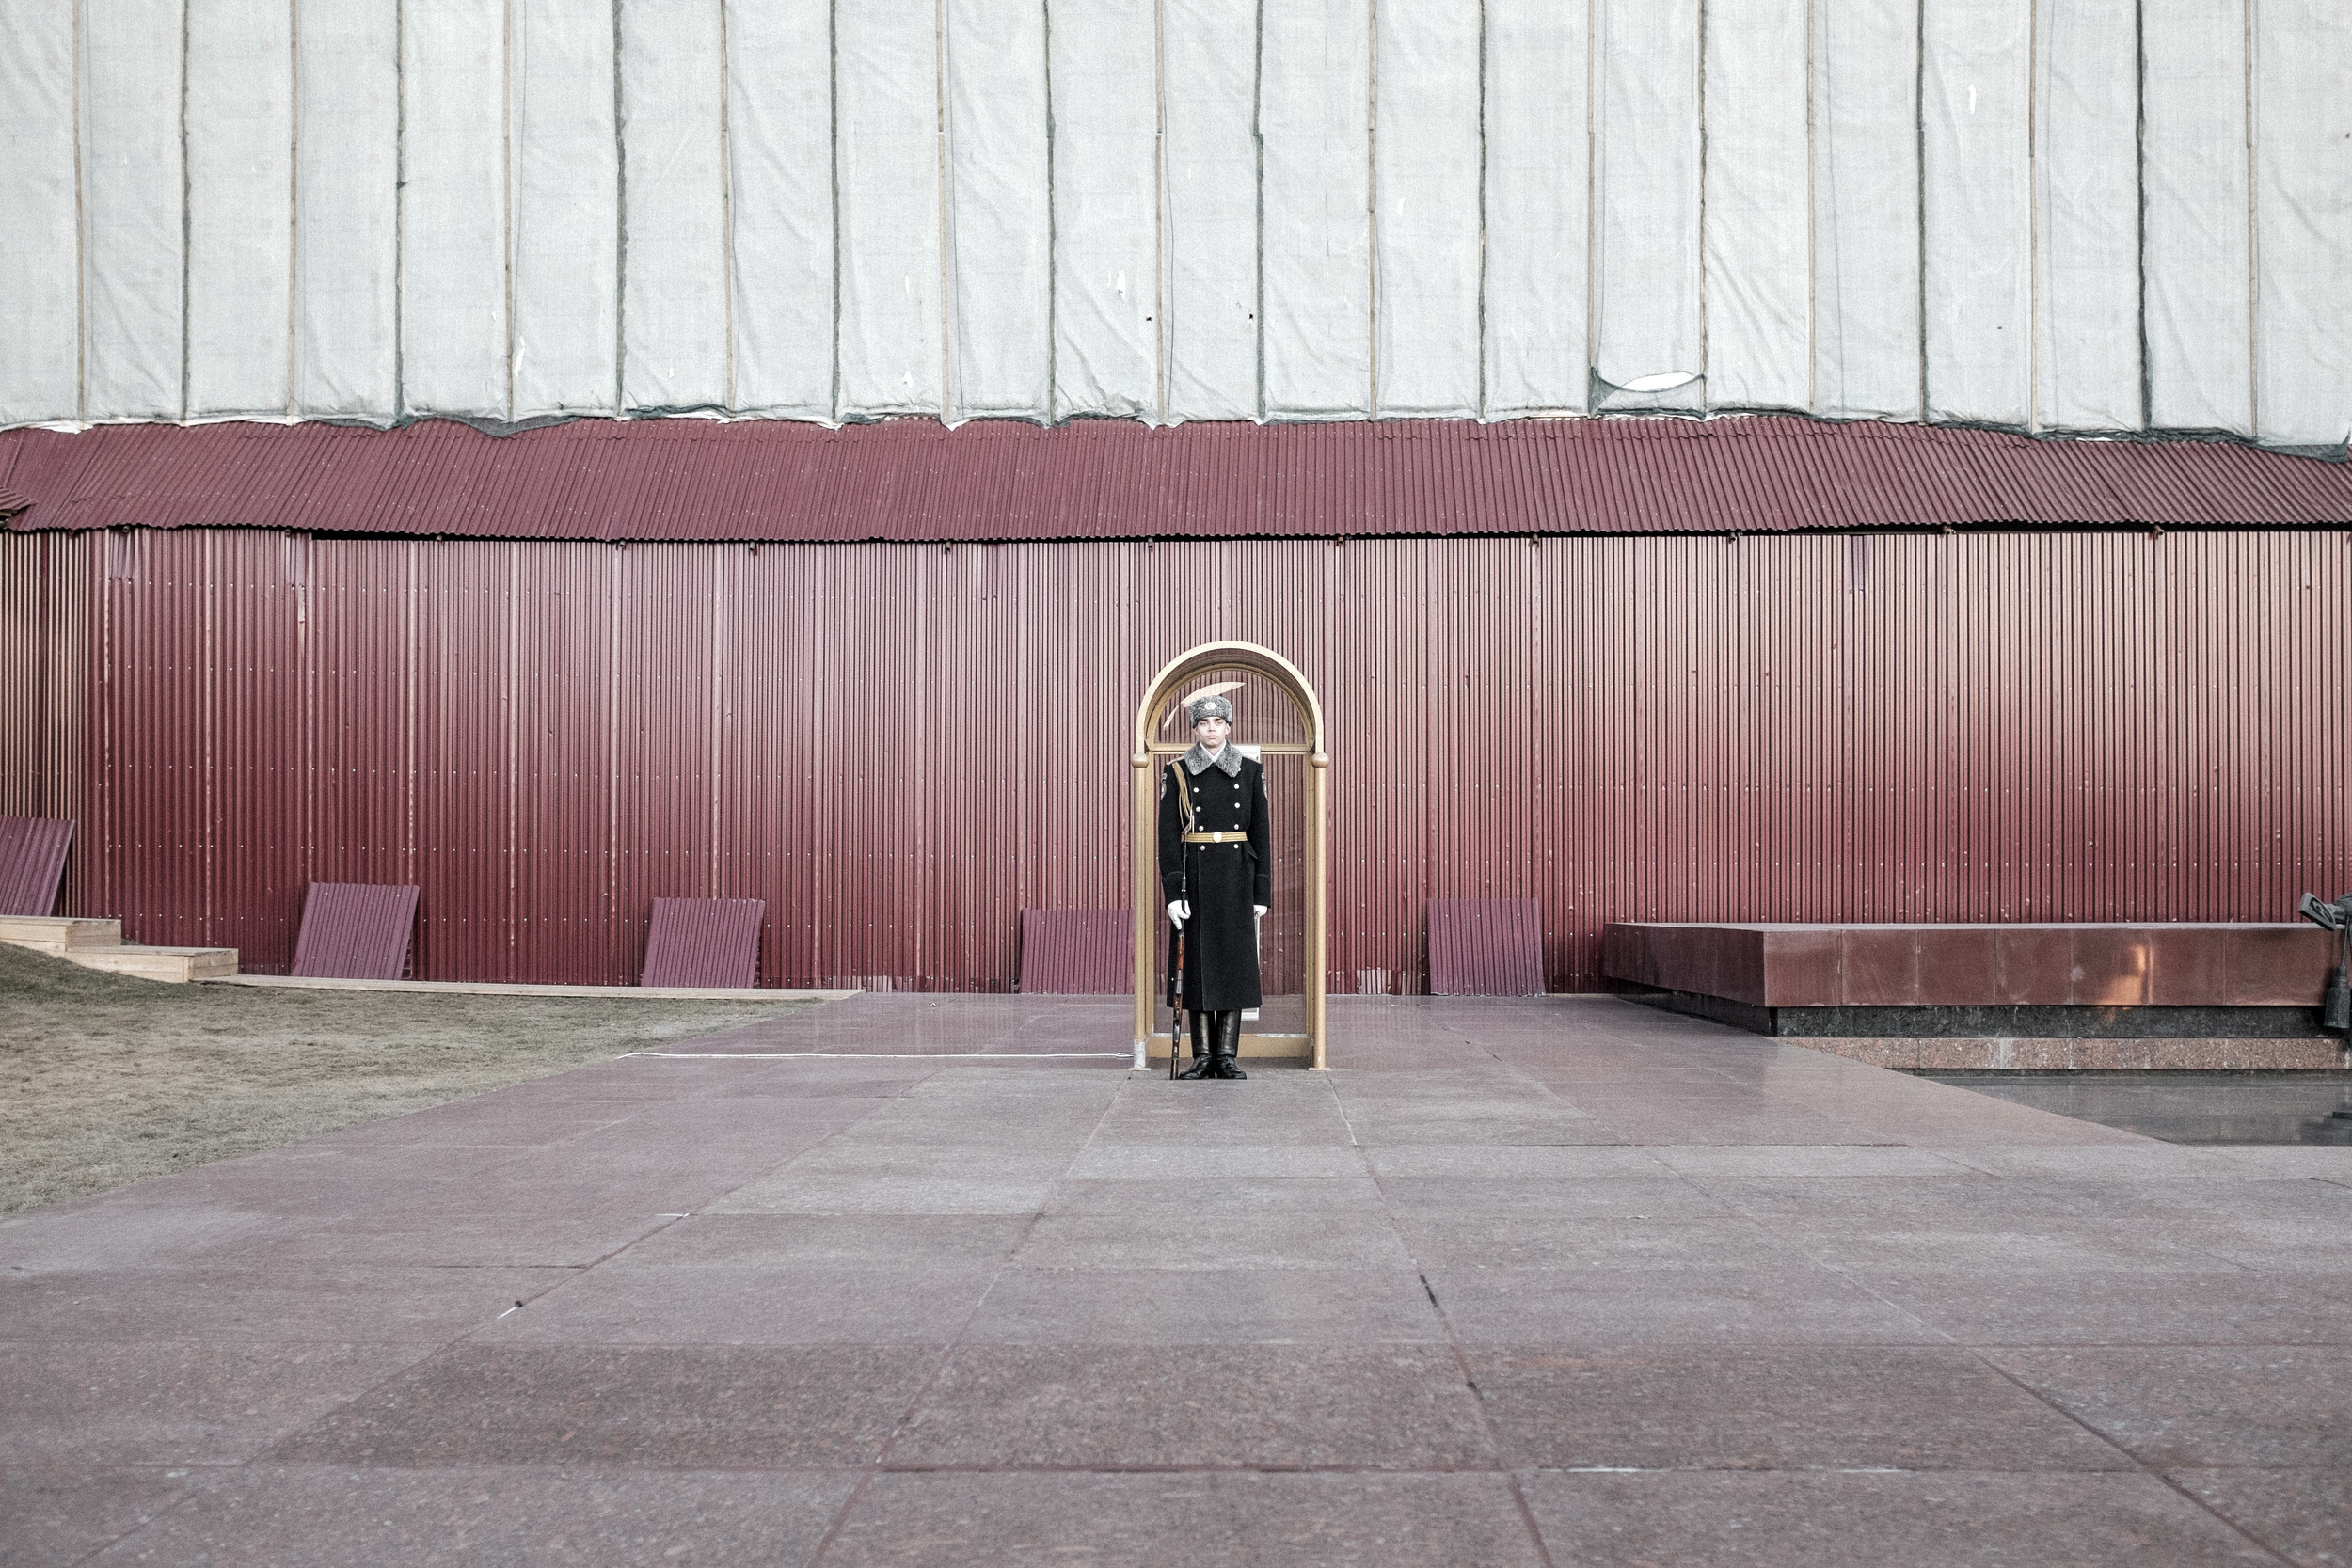 Honor guard, Red square, Moscow, 2015